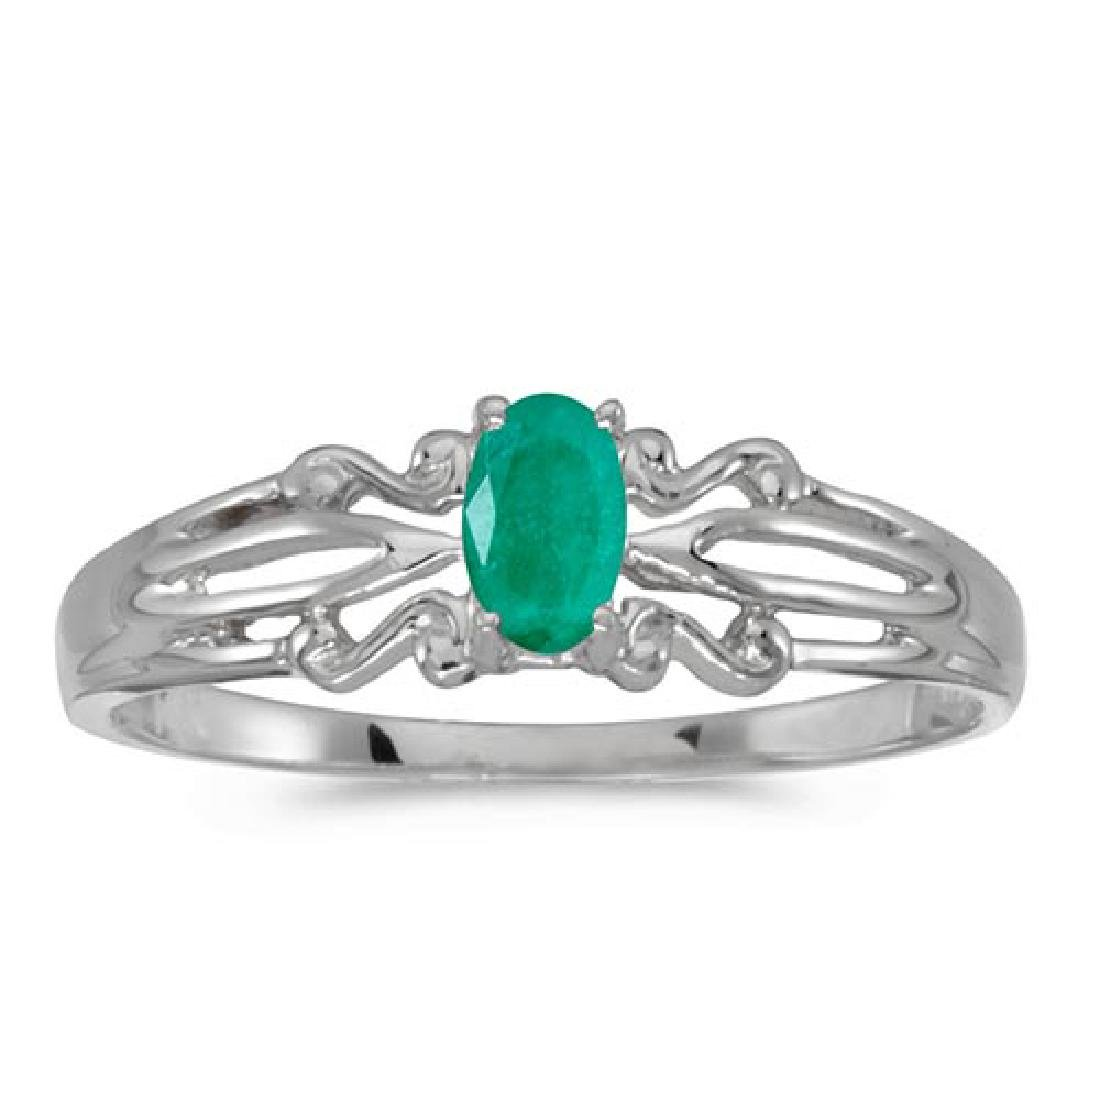 Certified 14k White Gold Oval Emerald Ring